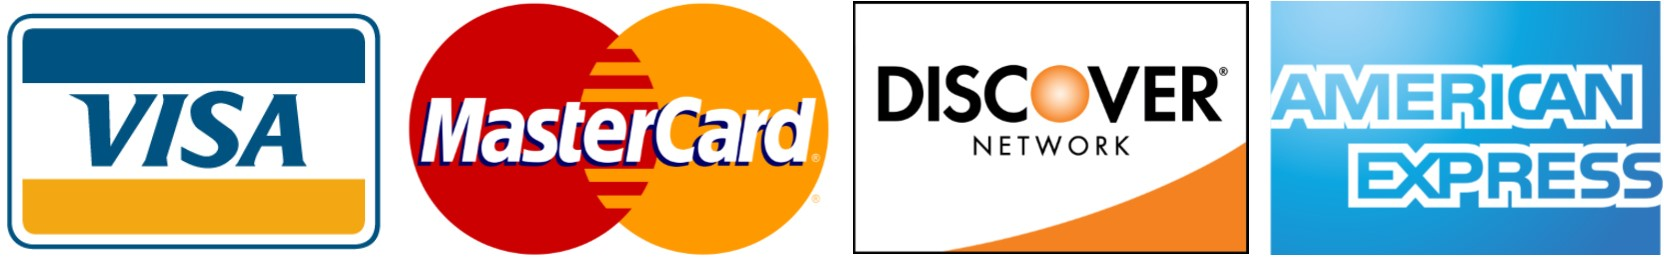 We take VISA, MasterCard, Discover, American Express for payment